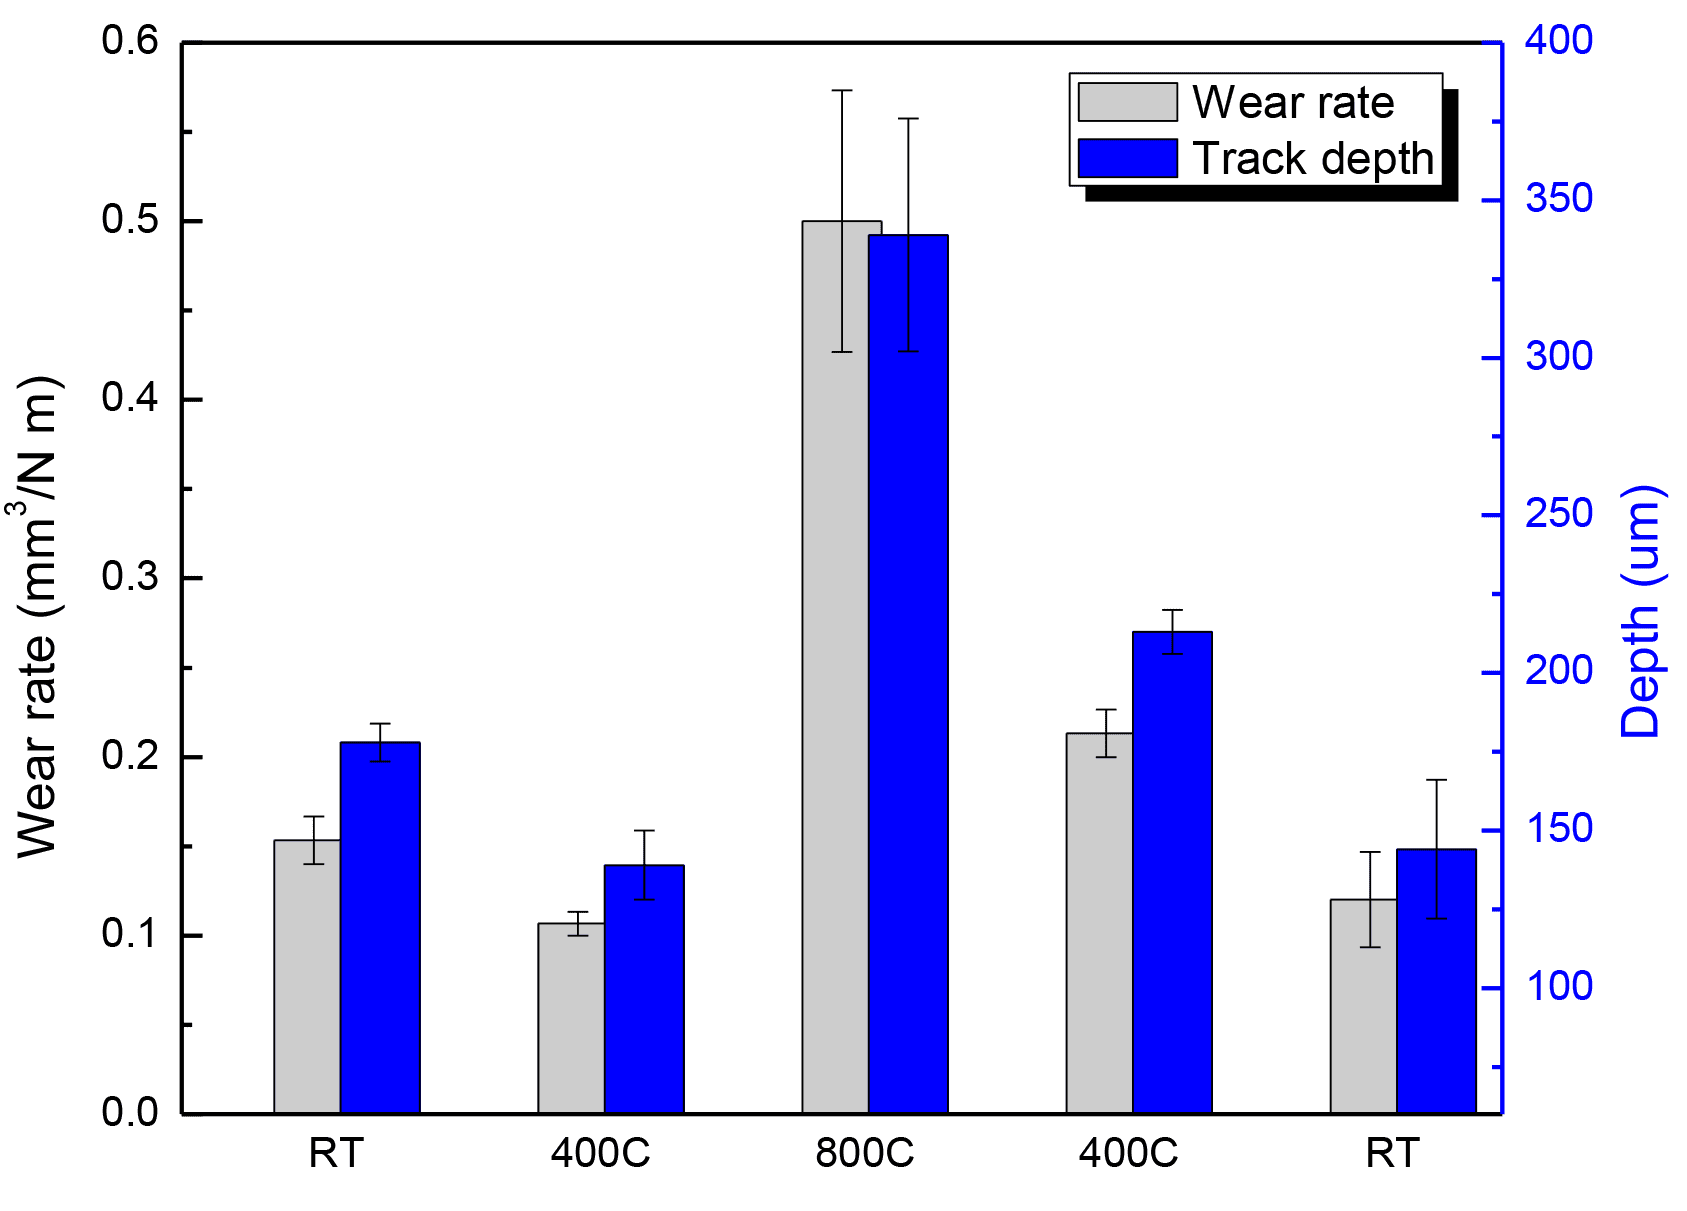 Wear rate and wear track depth of the sample at different temperatures 1